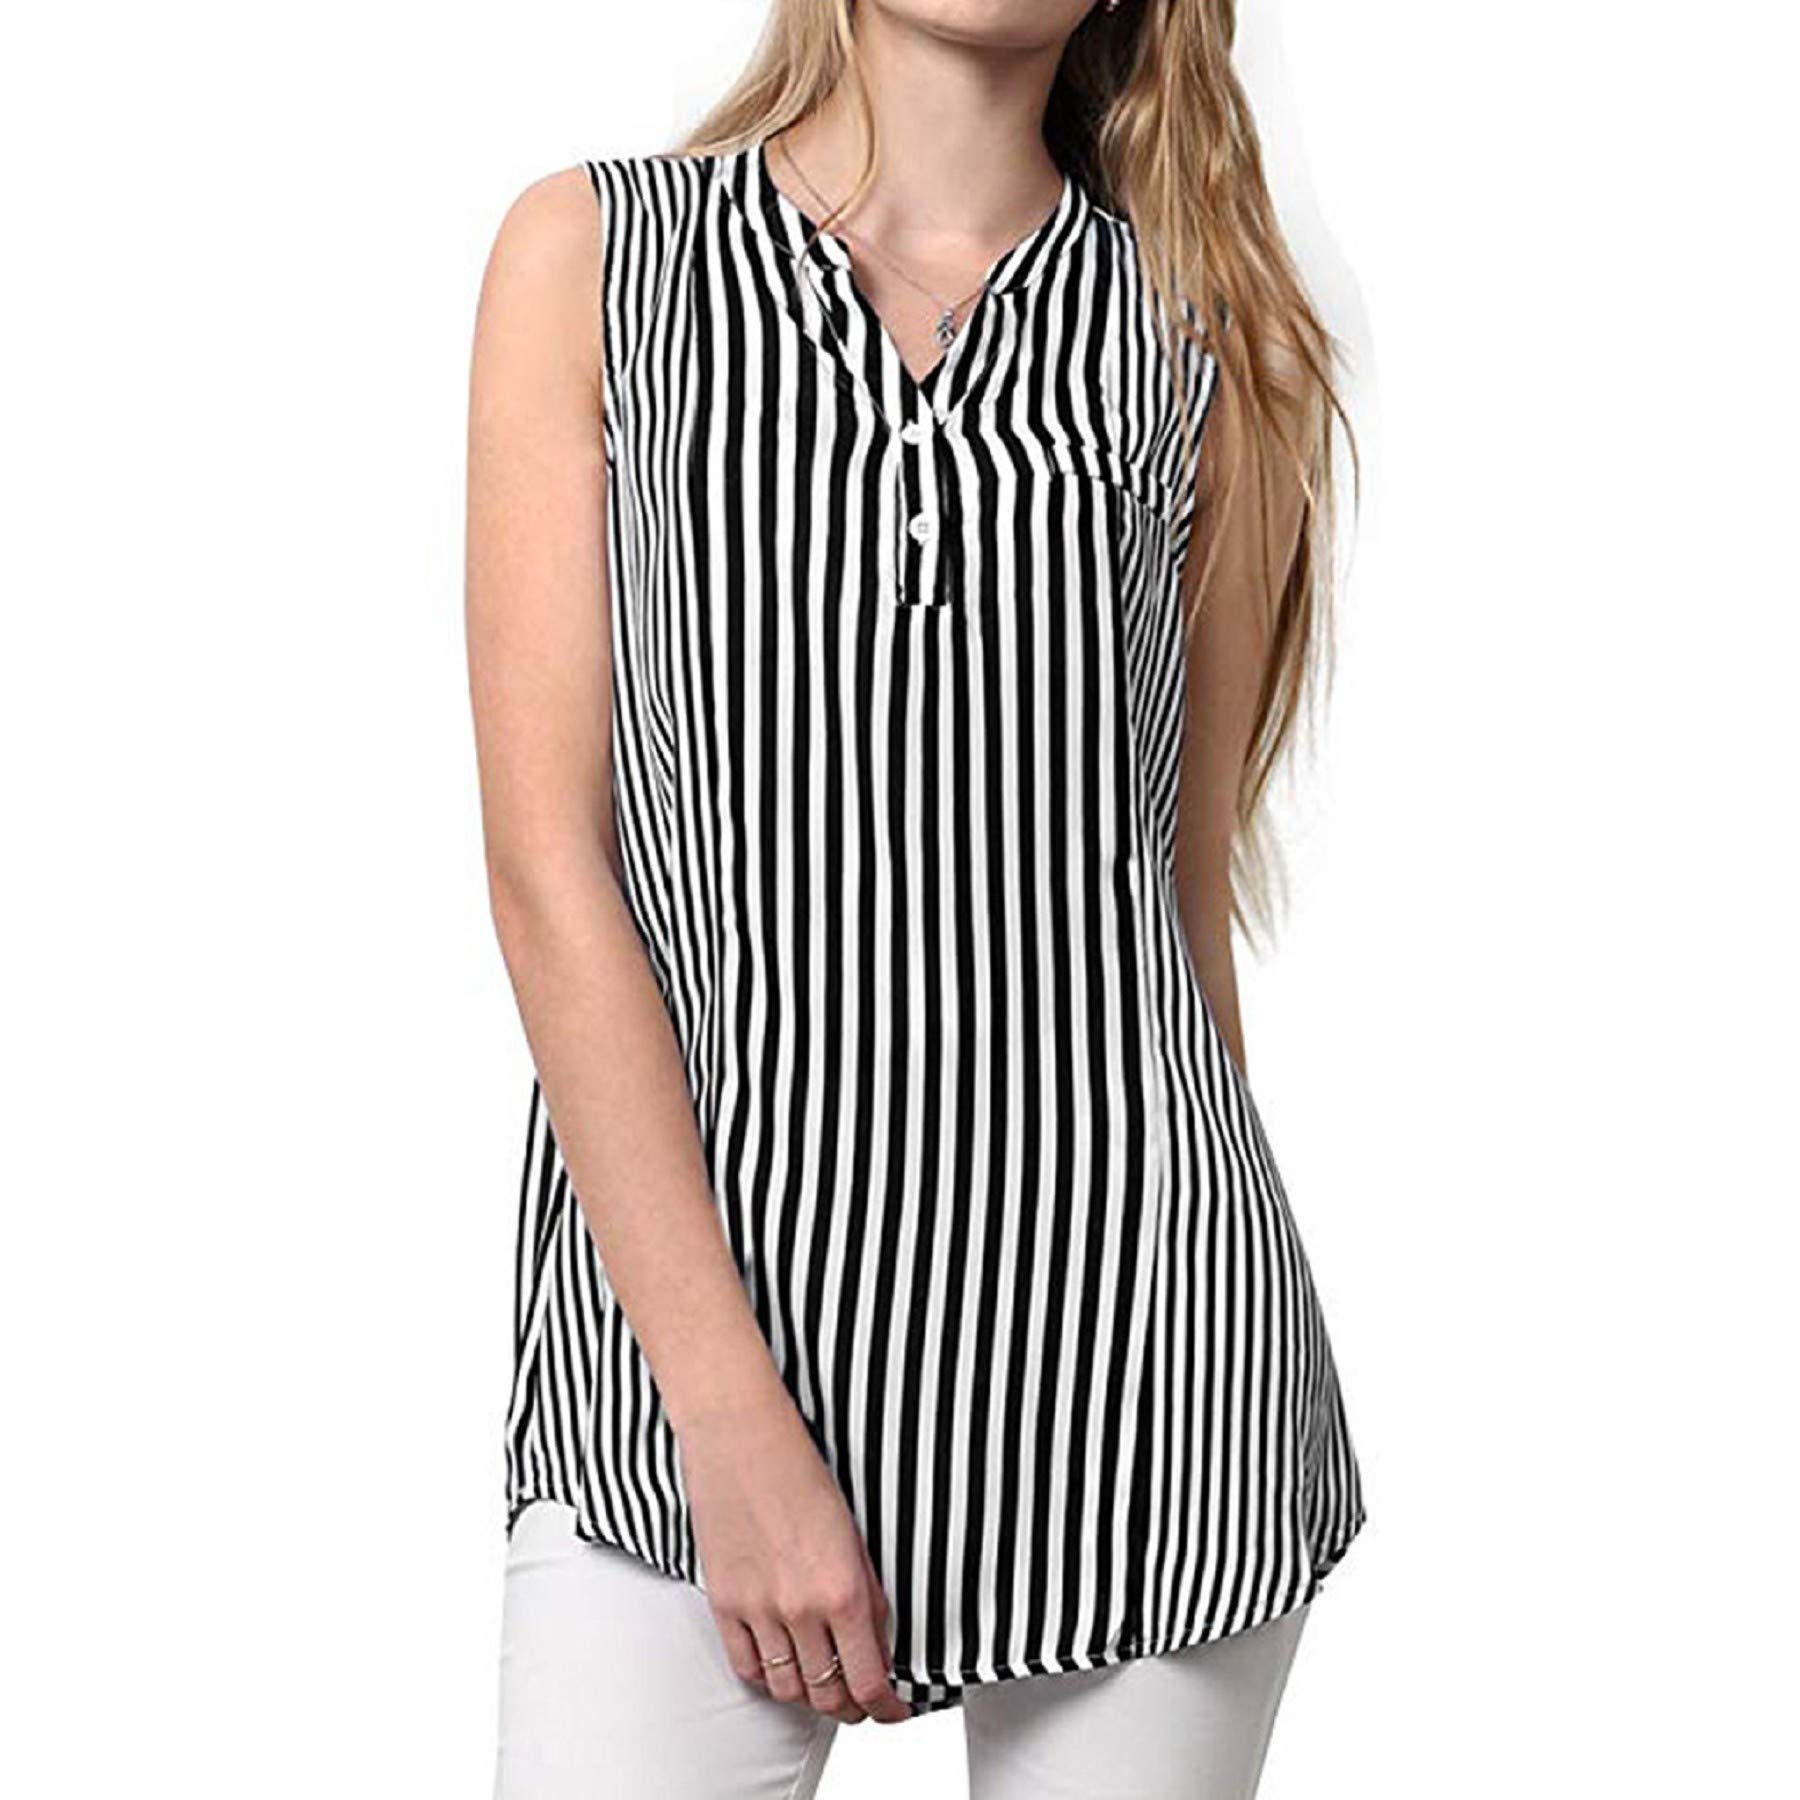 BingYELH Women Tops Womens Sleeveless Striped Printed Henley Shirt Button Summer Casual Loose Tank Top Blouse Vest White